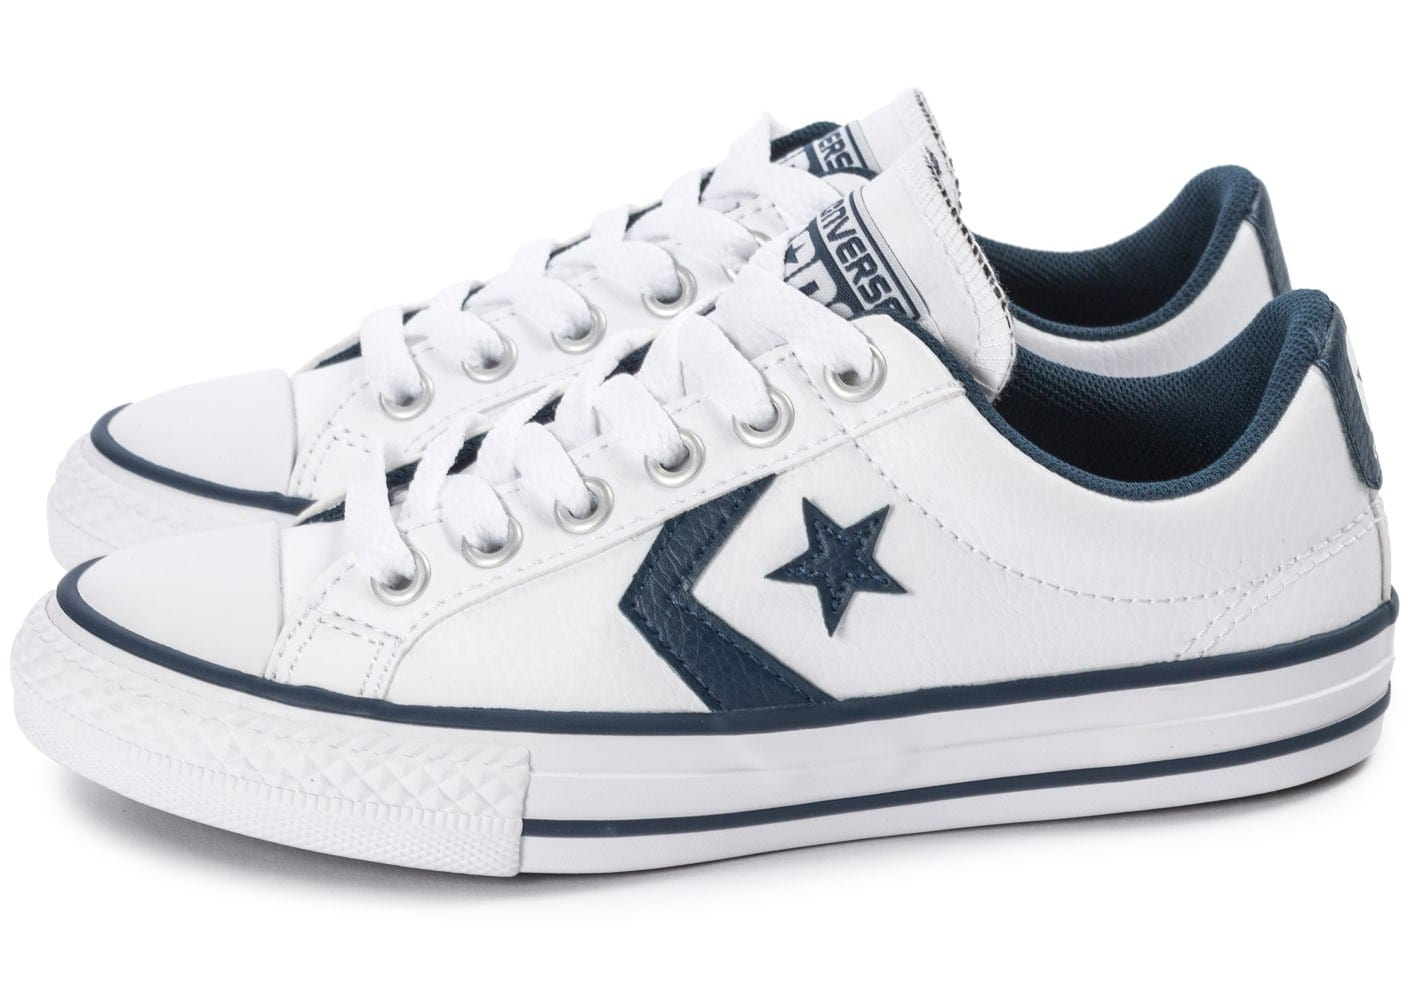 Chaussures Converse Star Player Chausport